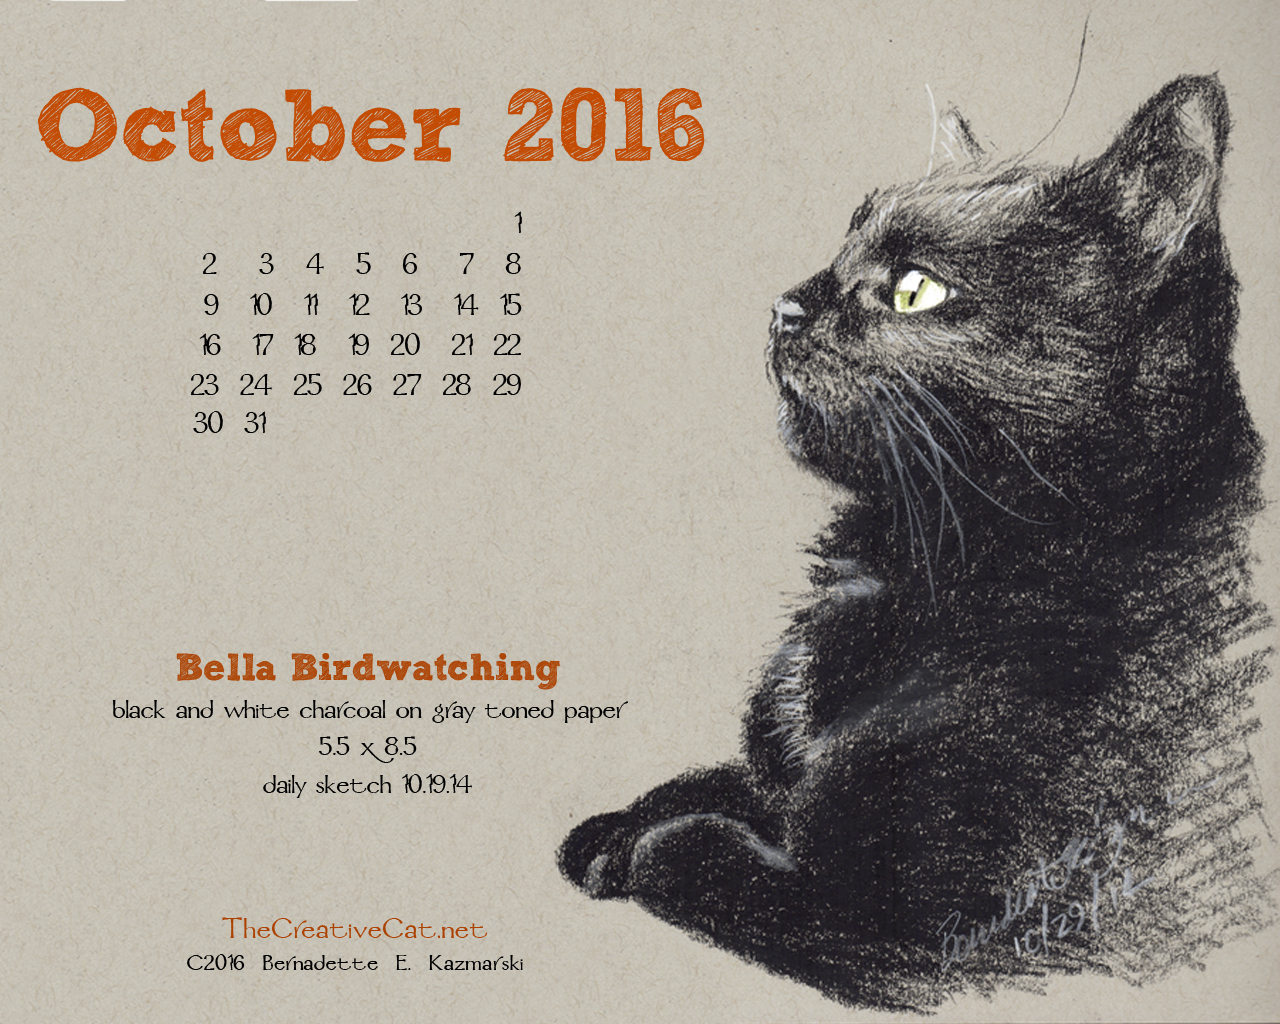 """Bella Birdwatching"" desktop calendar, 1280 x 1024 for square and laptop monitors."